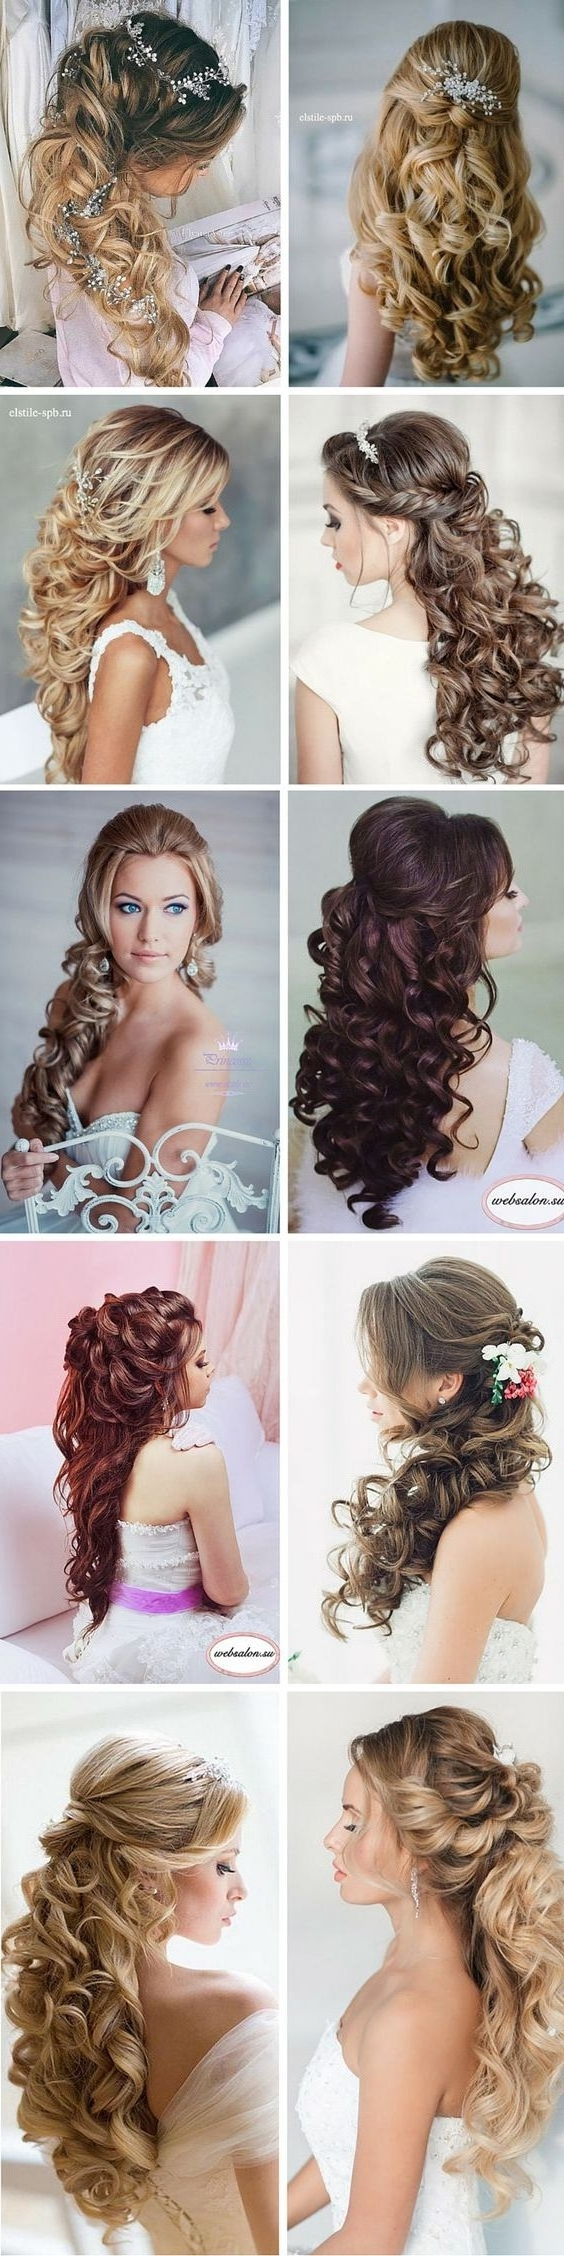 100+ Romantic Long Wedding Hairstyles 2018 – Curls, Half Up, Updos Pertaining To Trendy Wedding Hairstyles For Young Brides (View 1 of 15)